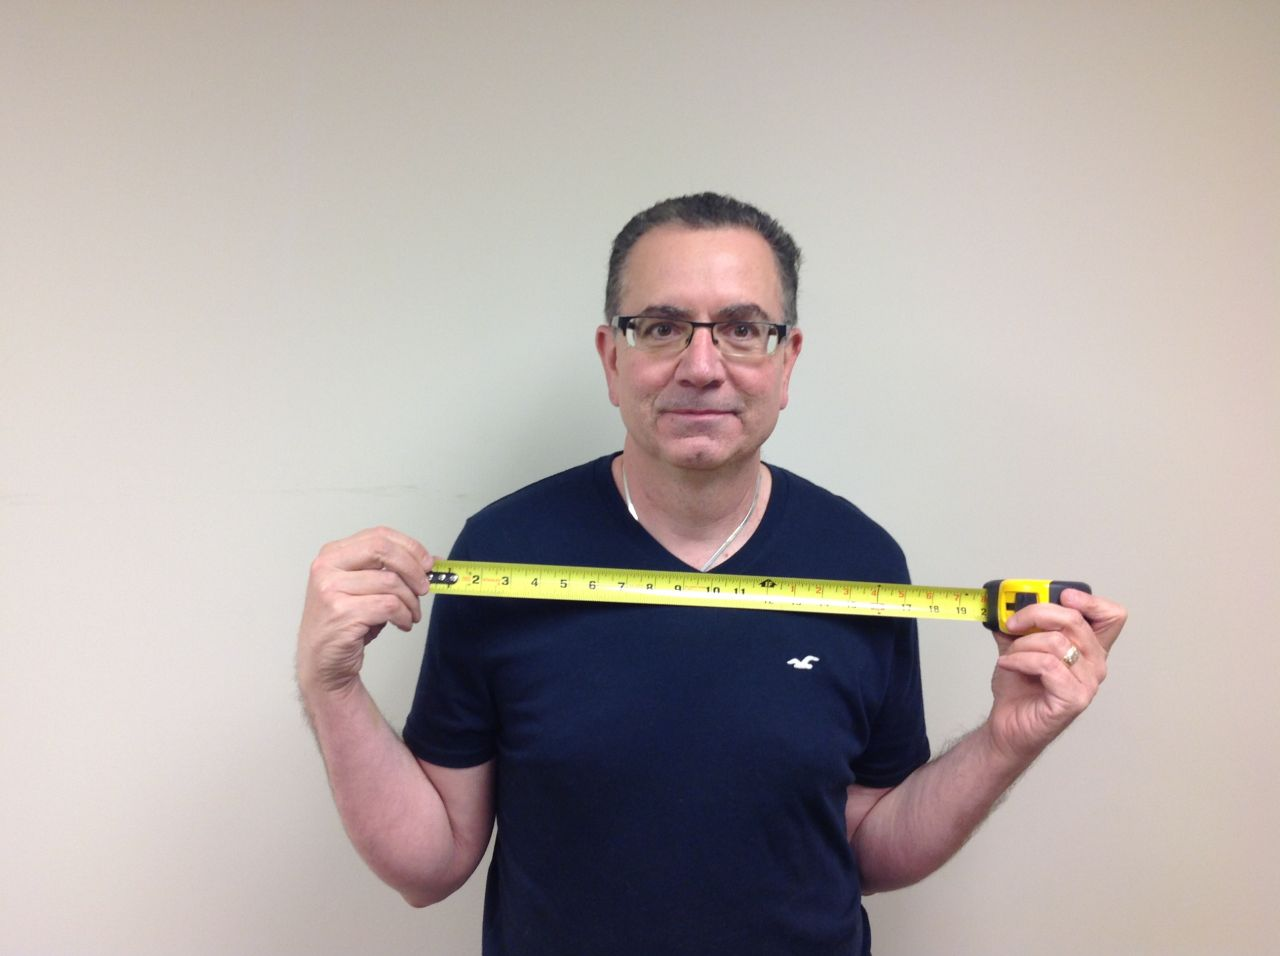 Mike Foti of Innovate Building Solutions measuring his personal width to determine the size of a shower opening